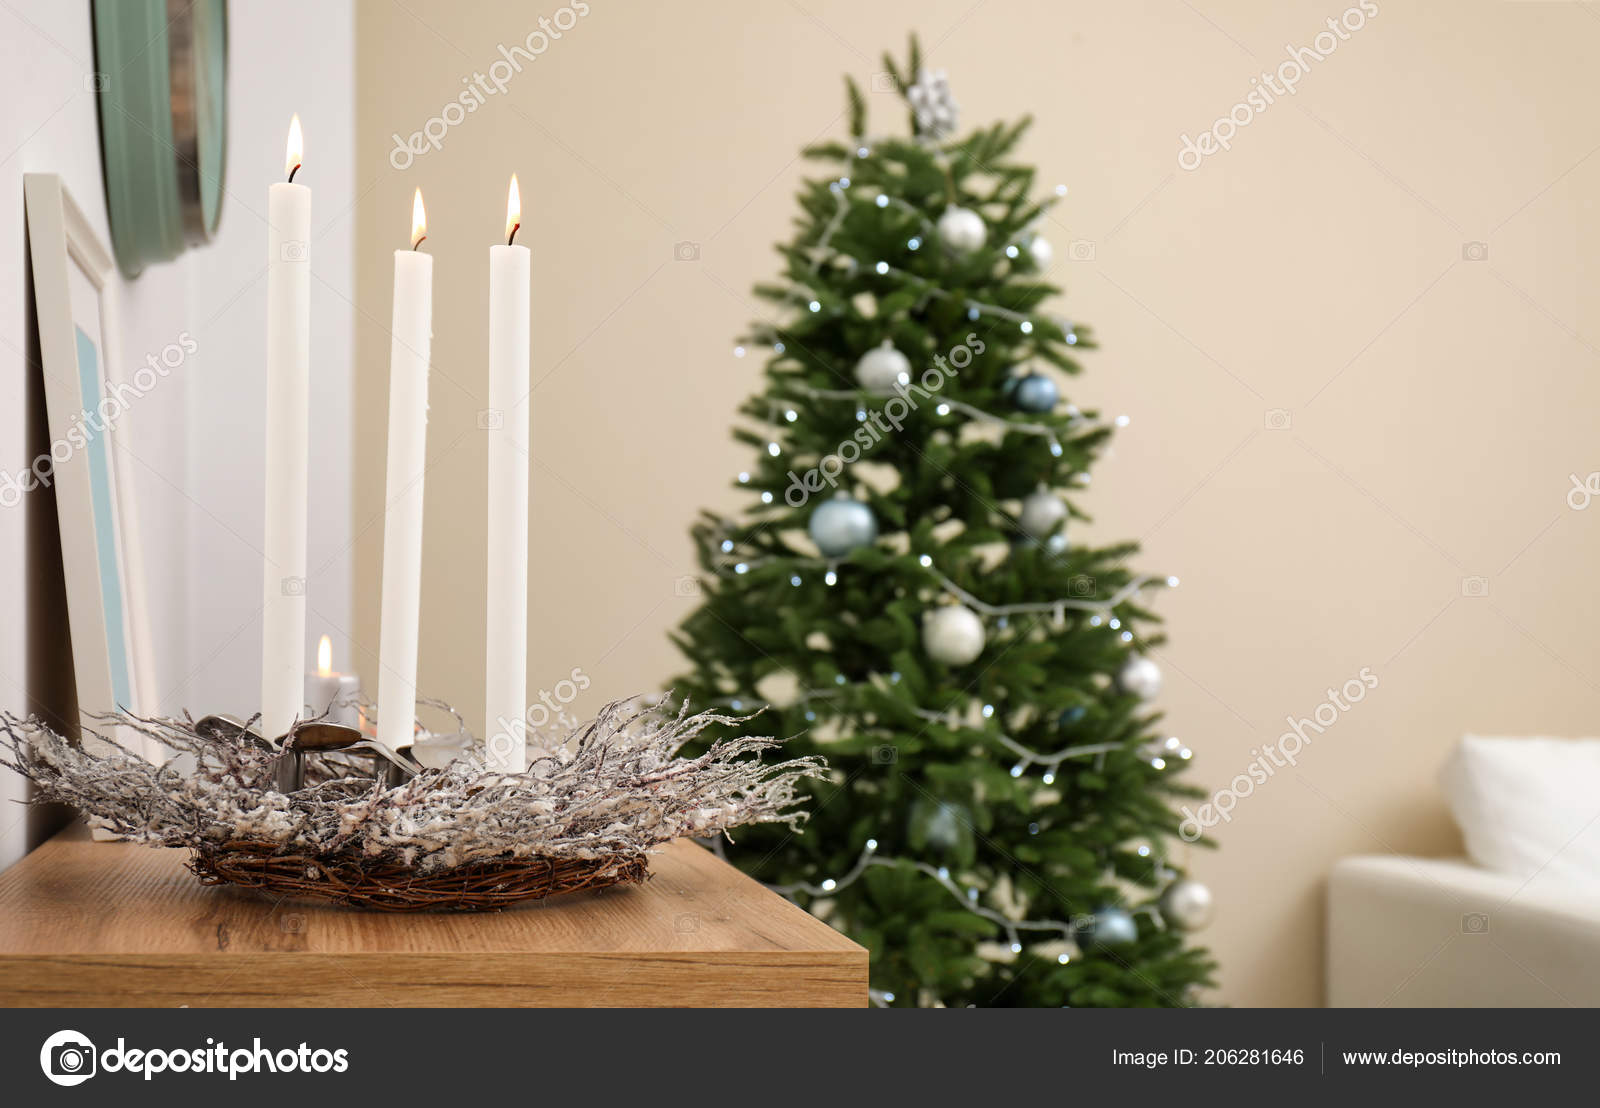 burning candles with wreath on table and christmas tree in stylish living room interior photo by liudmilachernetskagmailcom